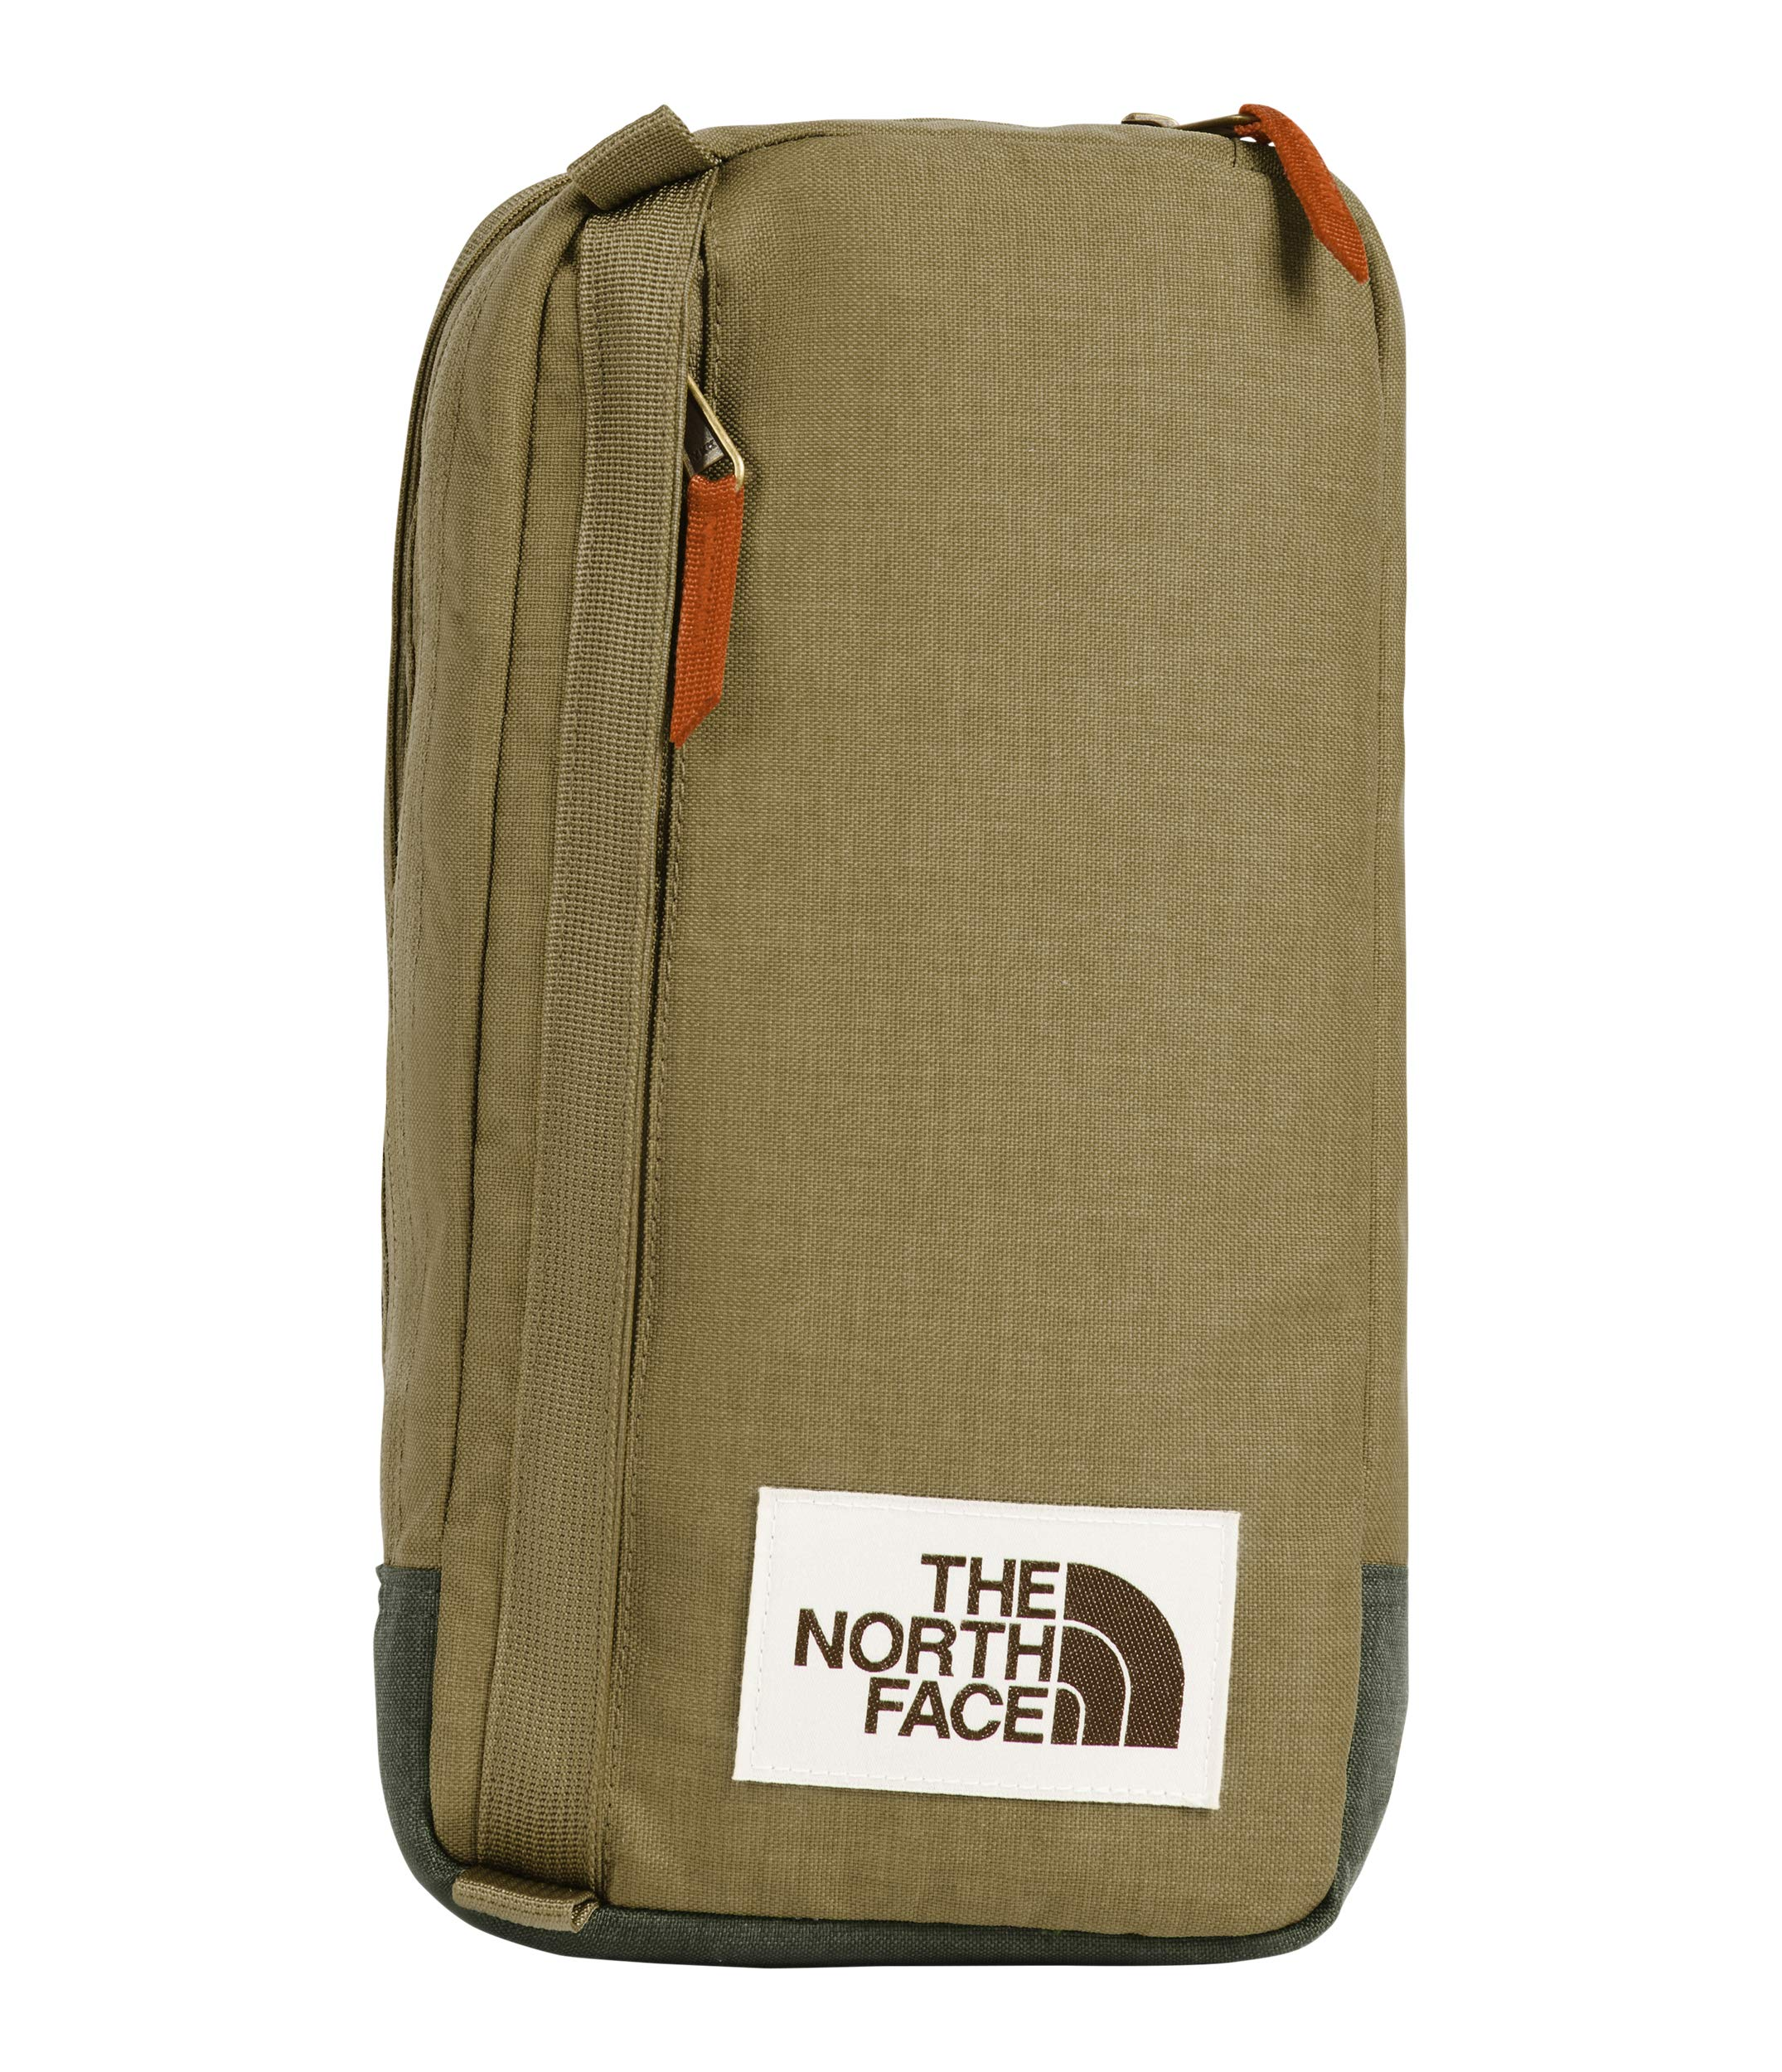 The North Face Field Bag, British Khaki Light Heather/New Taupe Green Light Heather, OS by The North Face